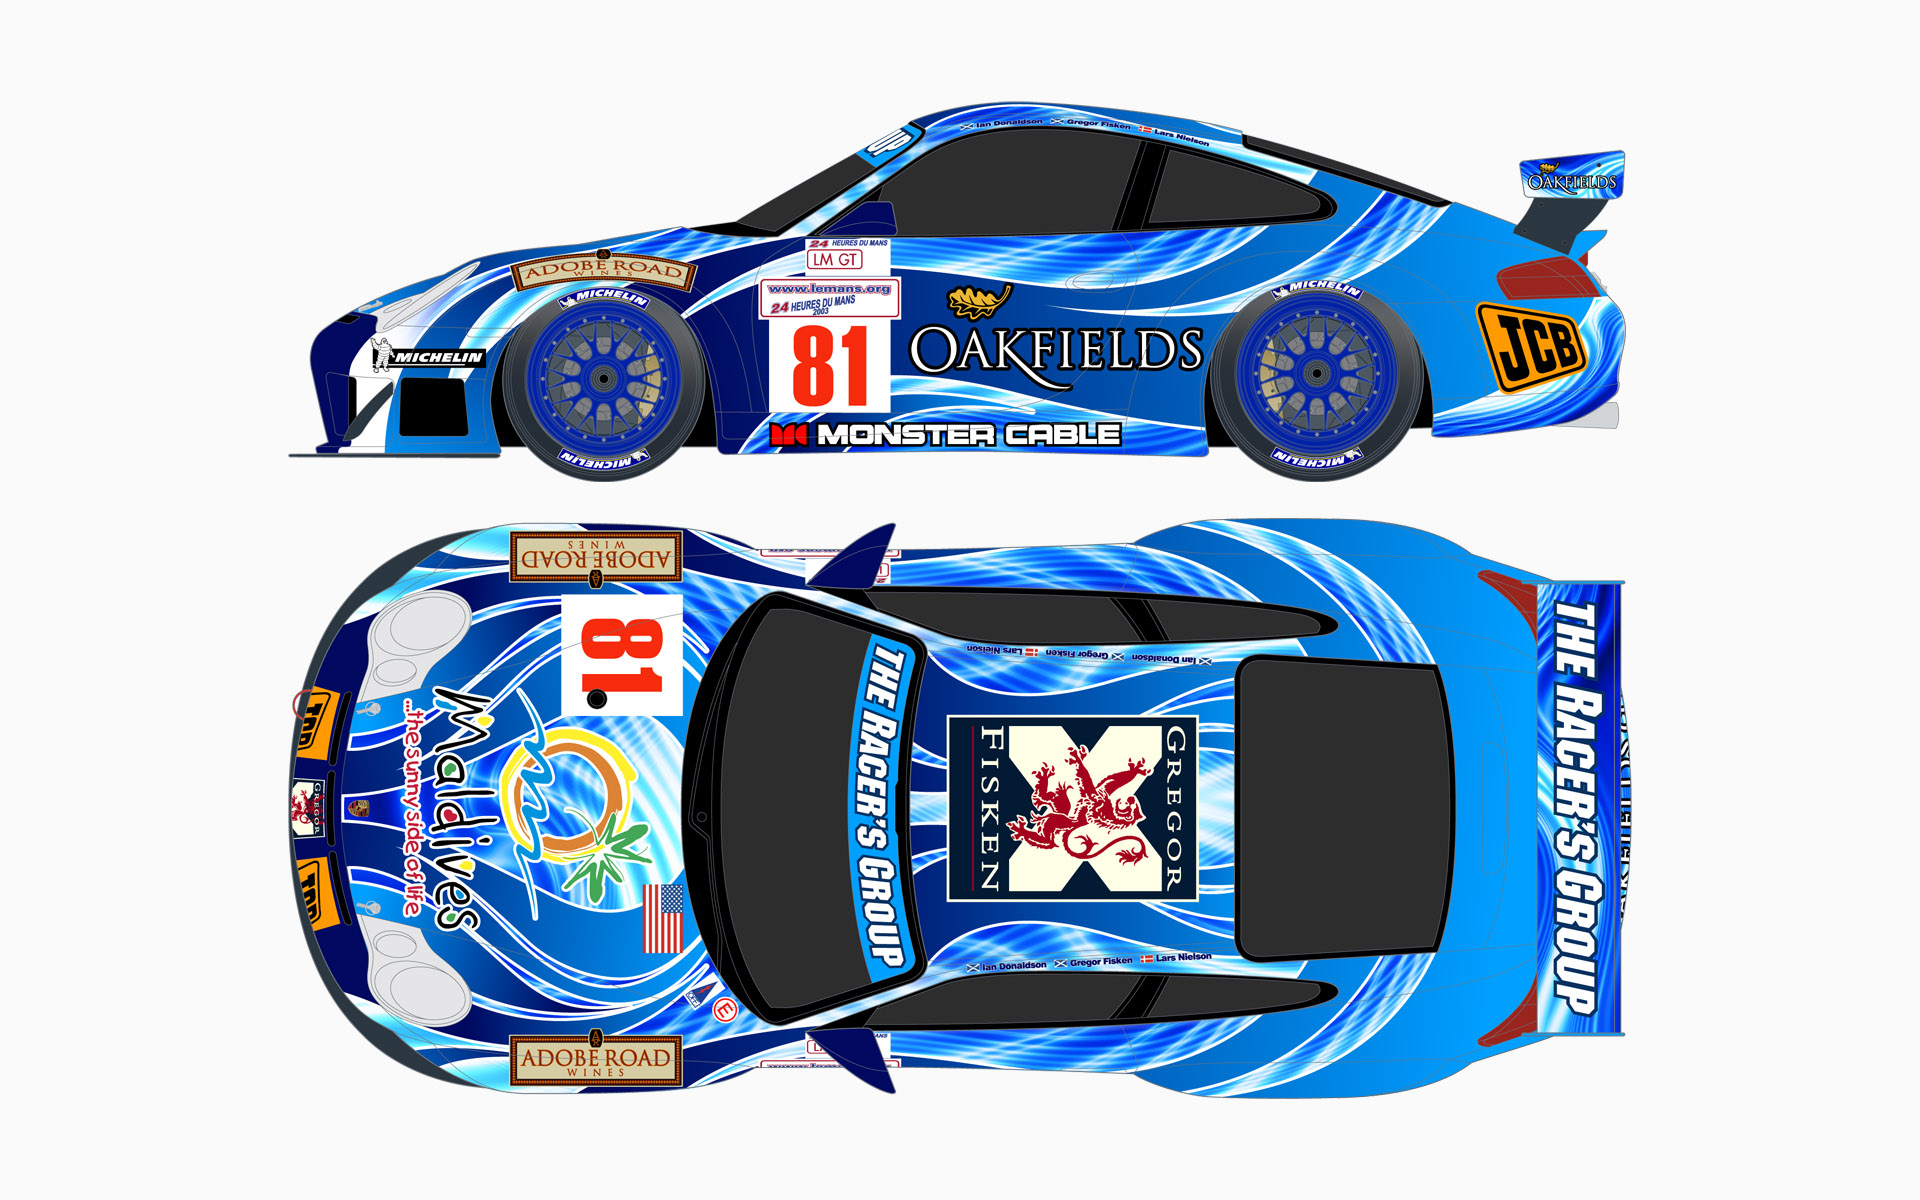 TRG Le Mans Porsche 911 GT3RS GT Livery Elevations